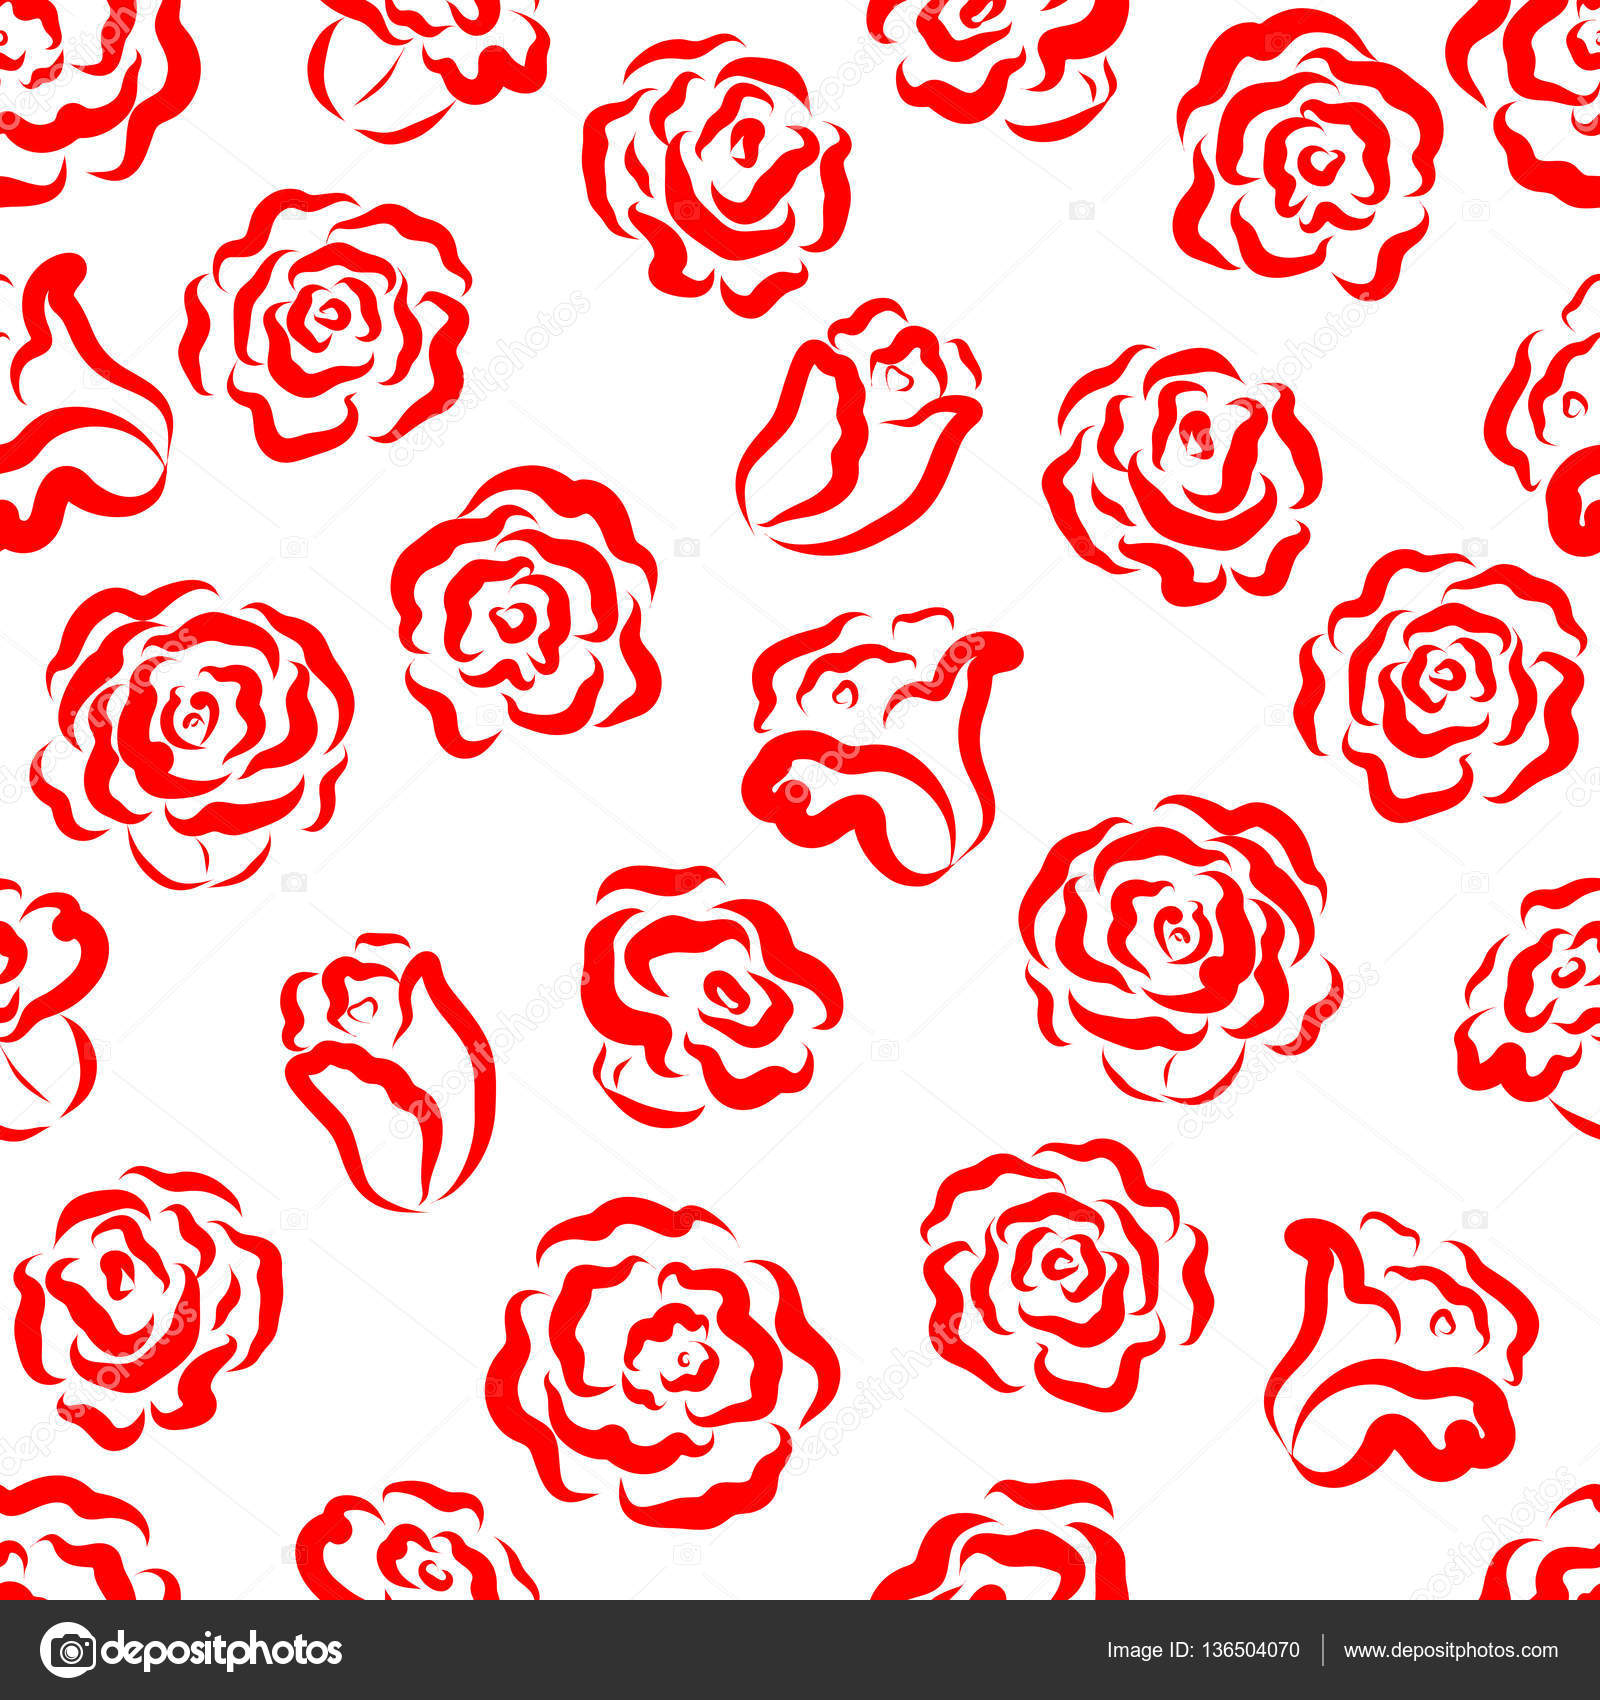 Seamless Floral Pattern Red Roses And Buds On A White Background For Design Backgrounds